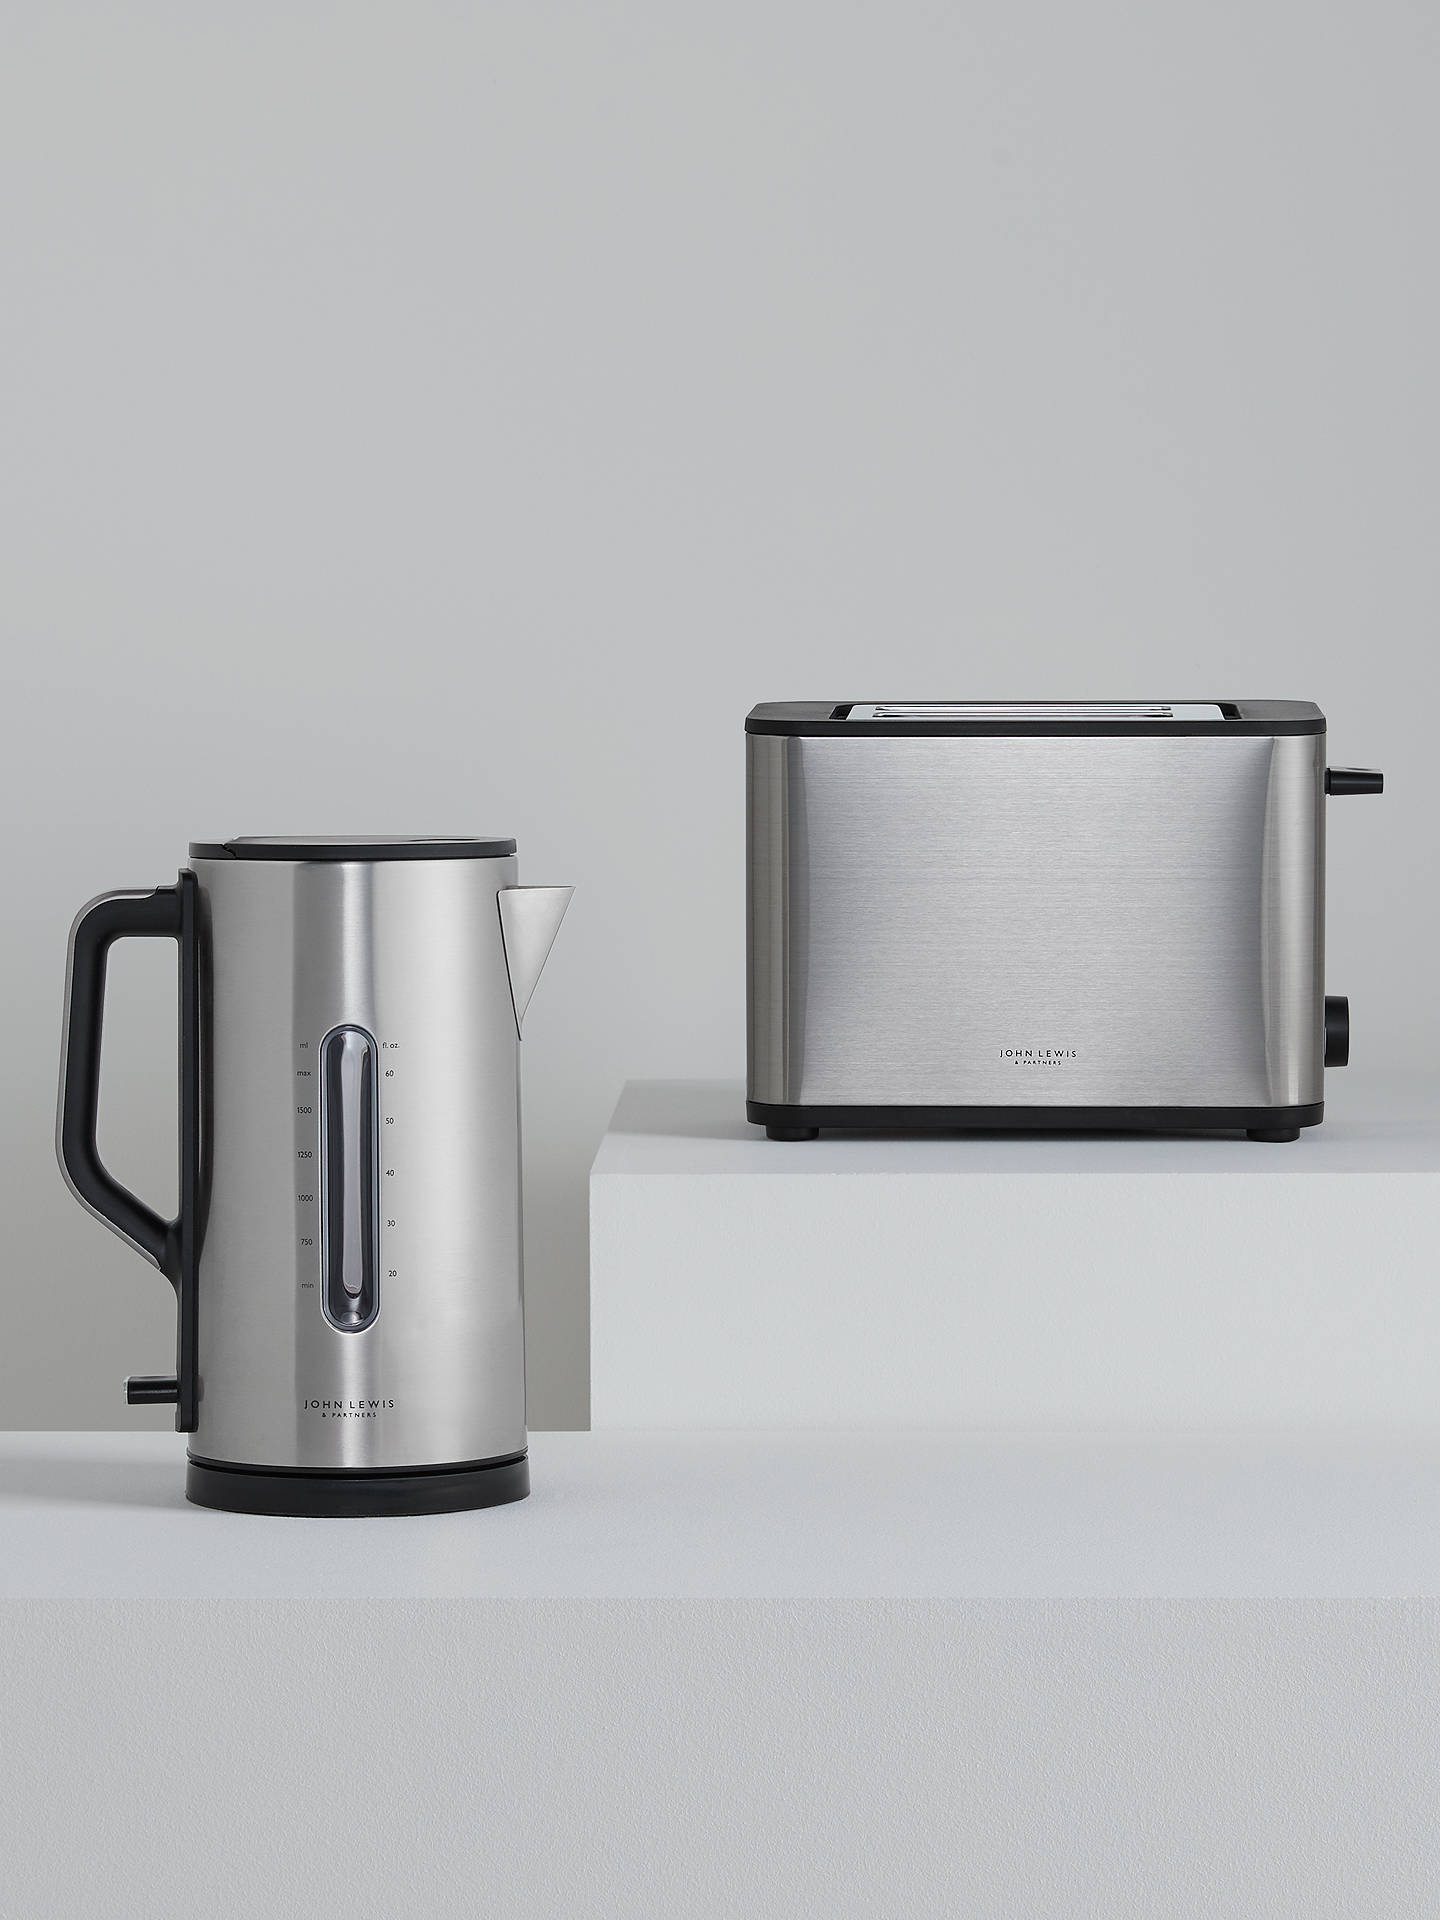 Buy John Lewis & Partners Simplicity 2-Slice Toaster, Stainless Steel Online at johnlewis.com